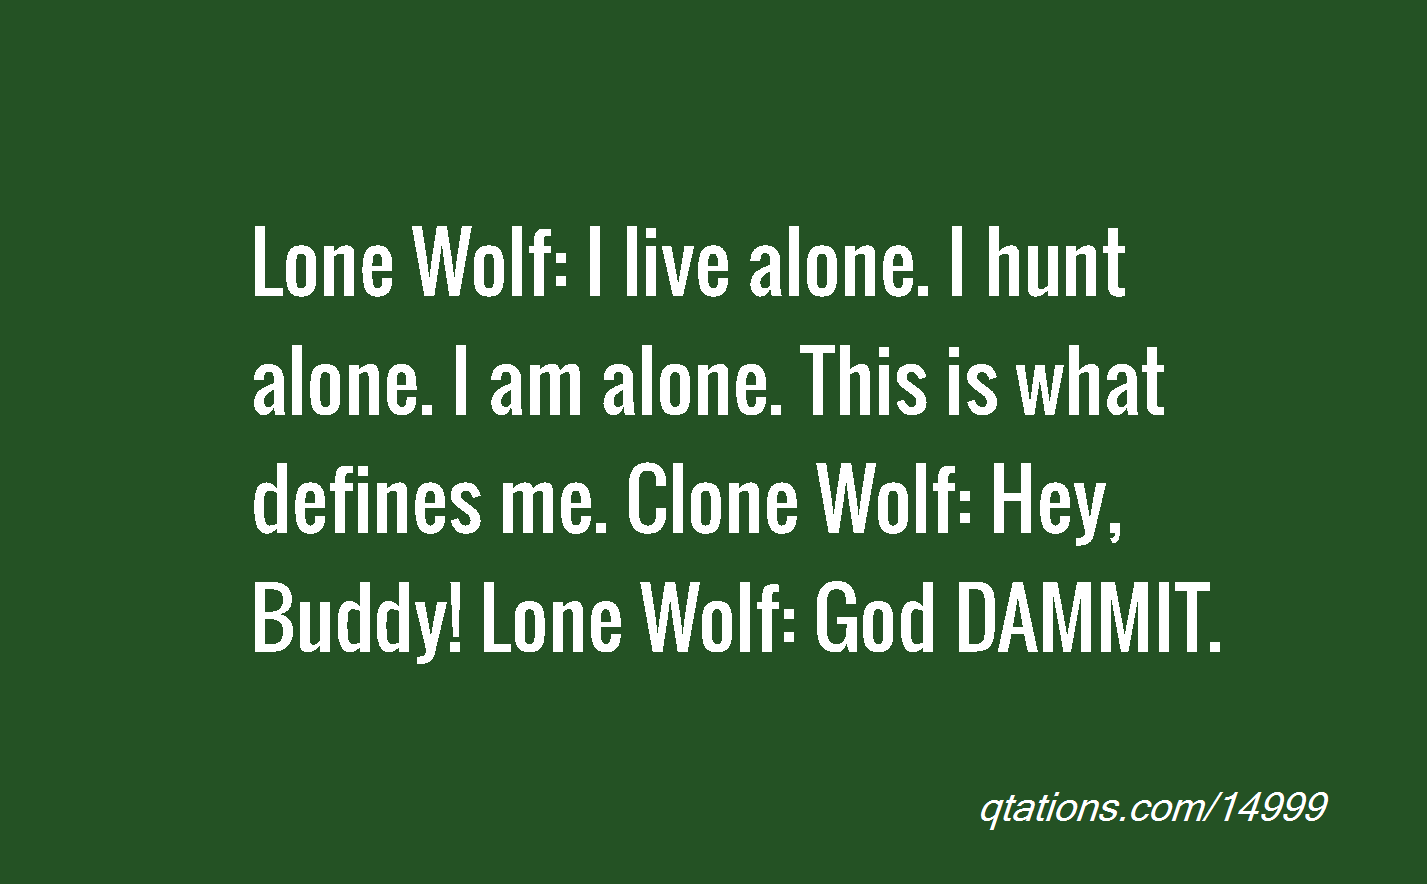 Lone wolf quotes - photo#28